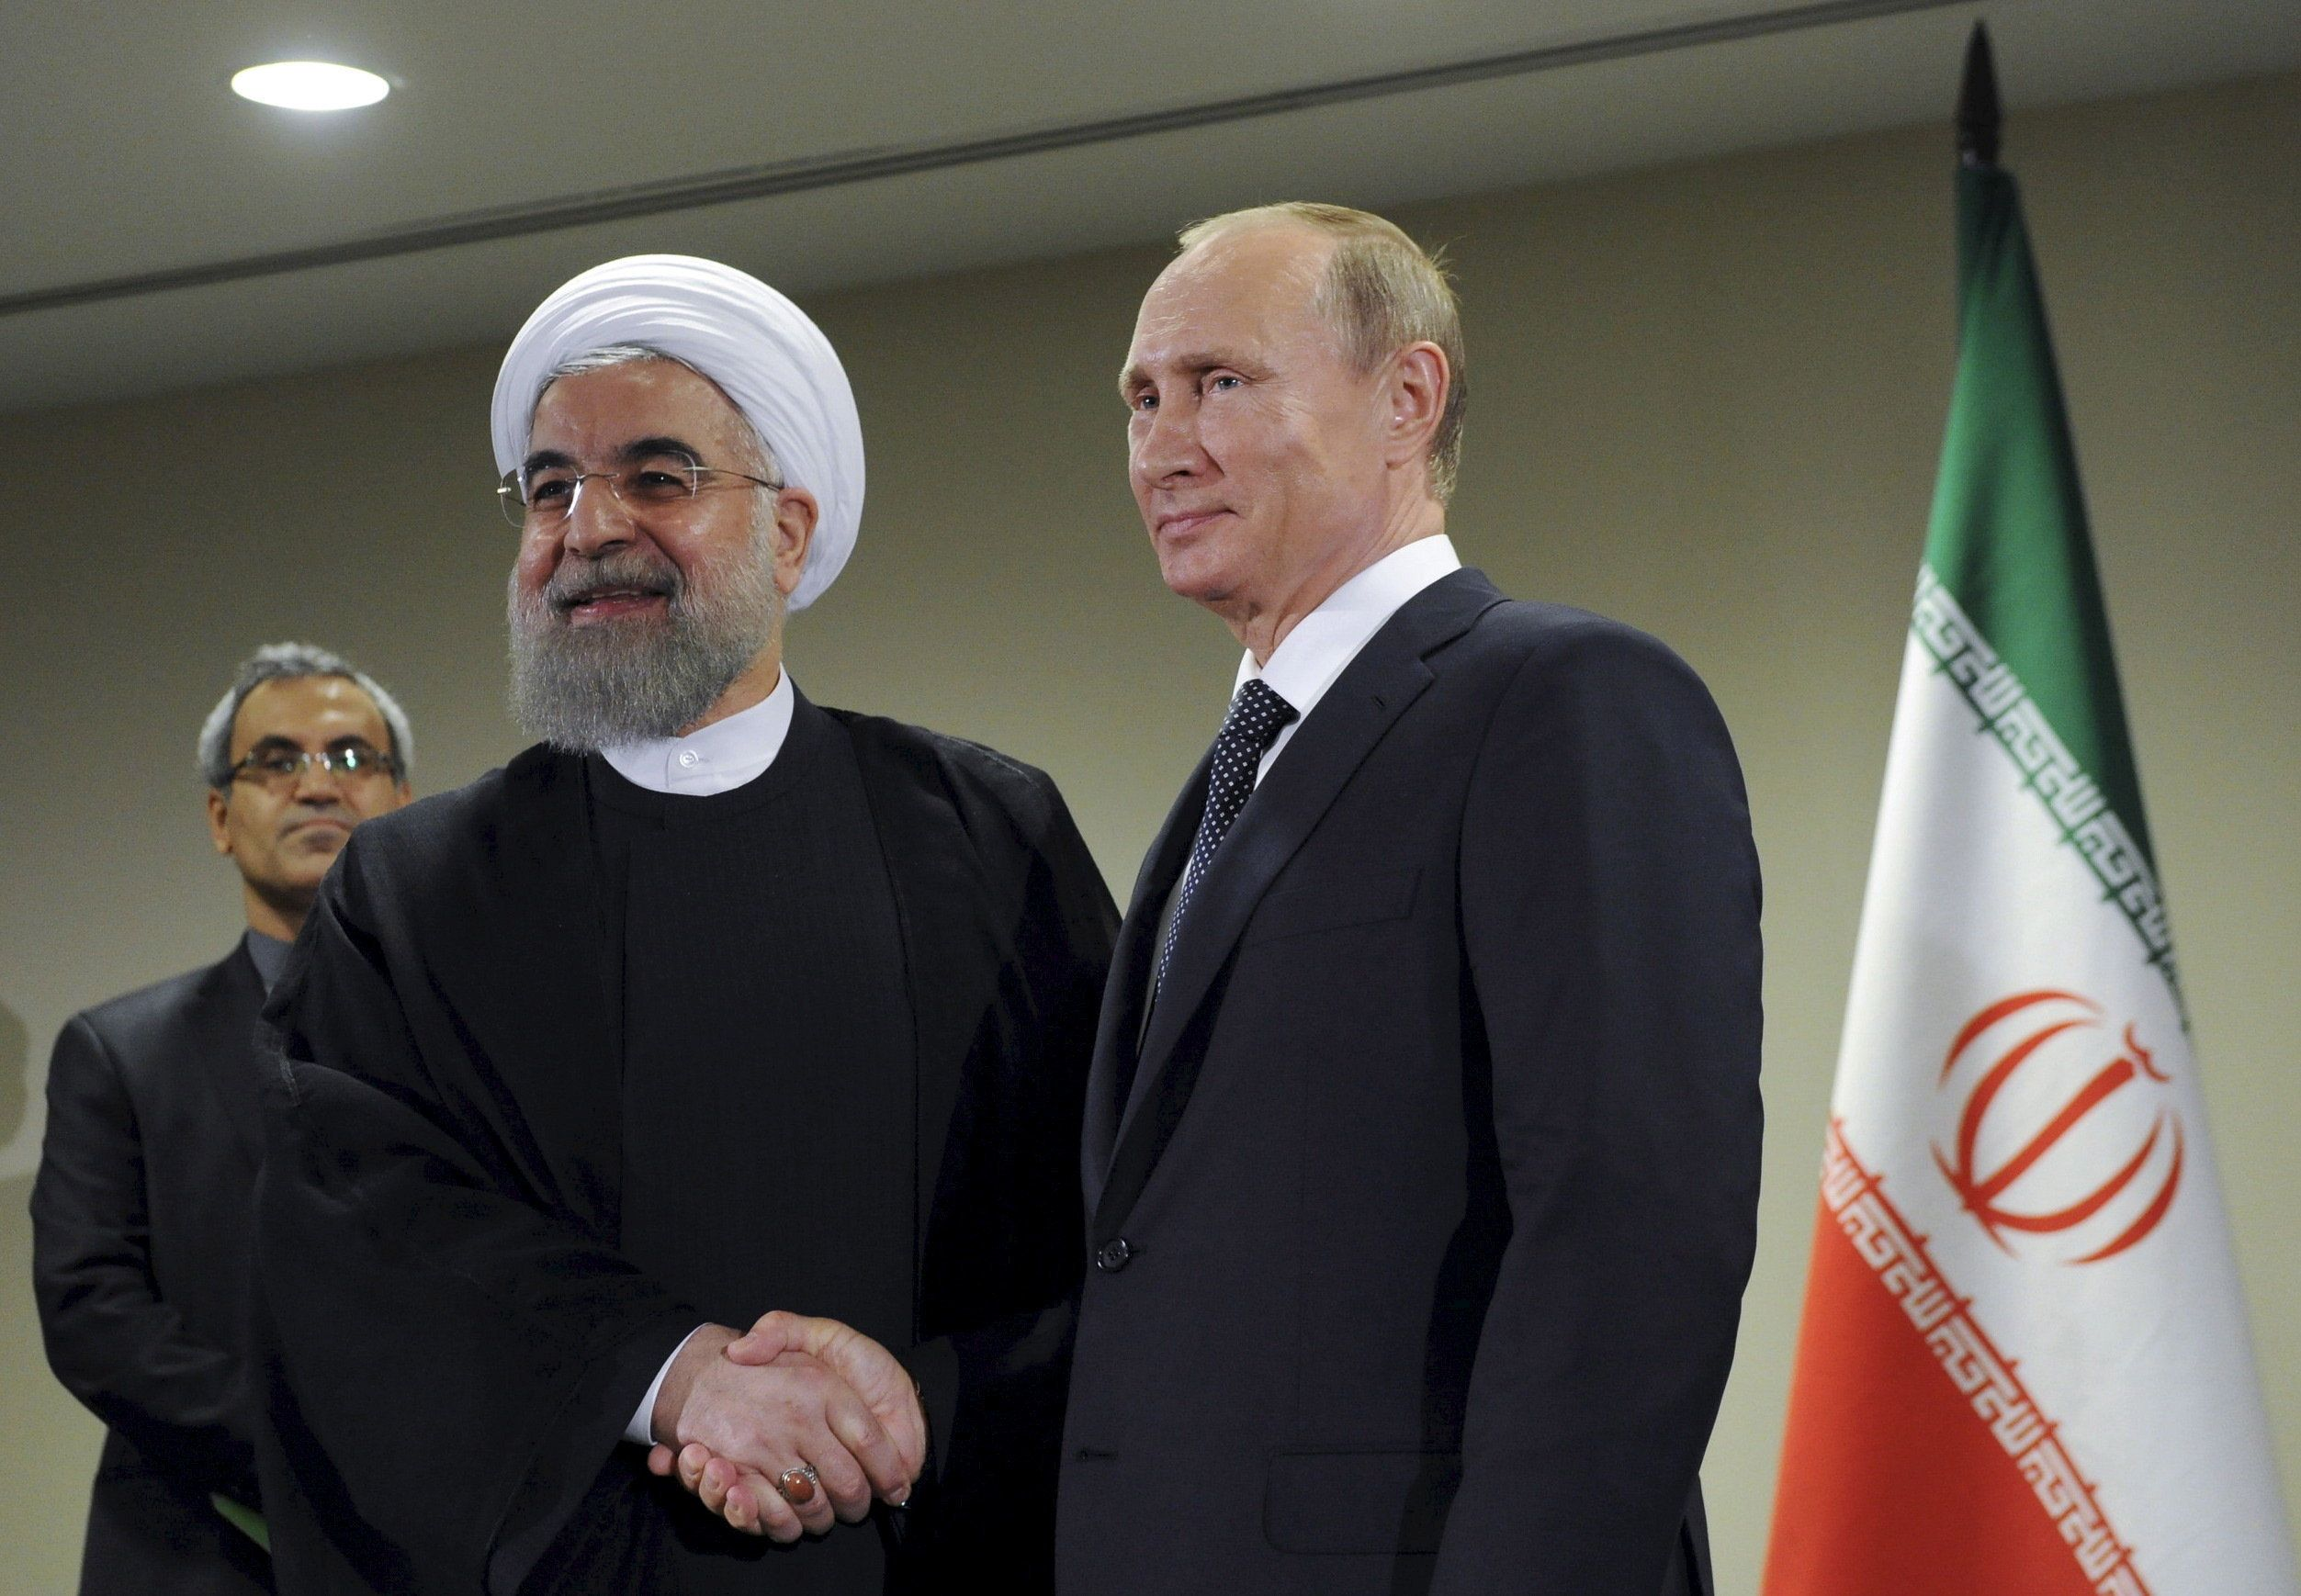 Russia's President Vladimir Putin (R) meets with Iran's President Hassan Rouhani on the sidelines of the United Nations General Assembly in New York, September 28, 2015. To match Insight RUSSIA-IRAN/    Mikhail Klimentyev/RIA Novosti/Kremlin/File Photo via REUTERS    ATTENTION EDITORS - THIS IMAGE WAS PROVIDED BY A THIRD PARTY. EDITORIAL USE ONLY.